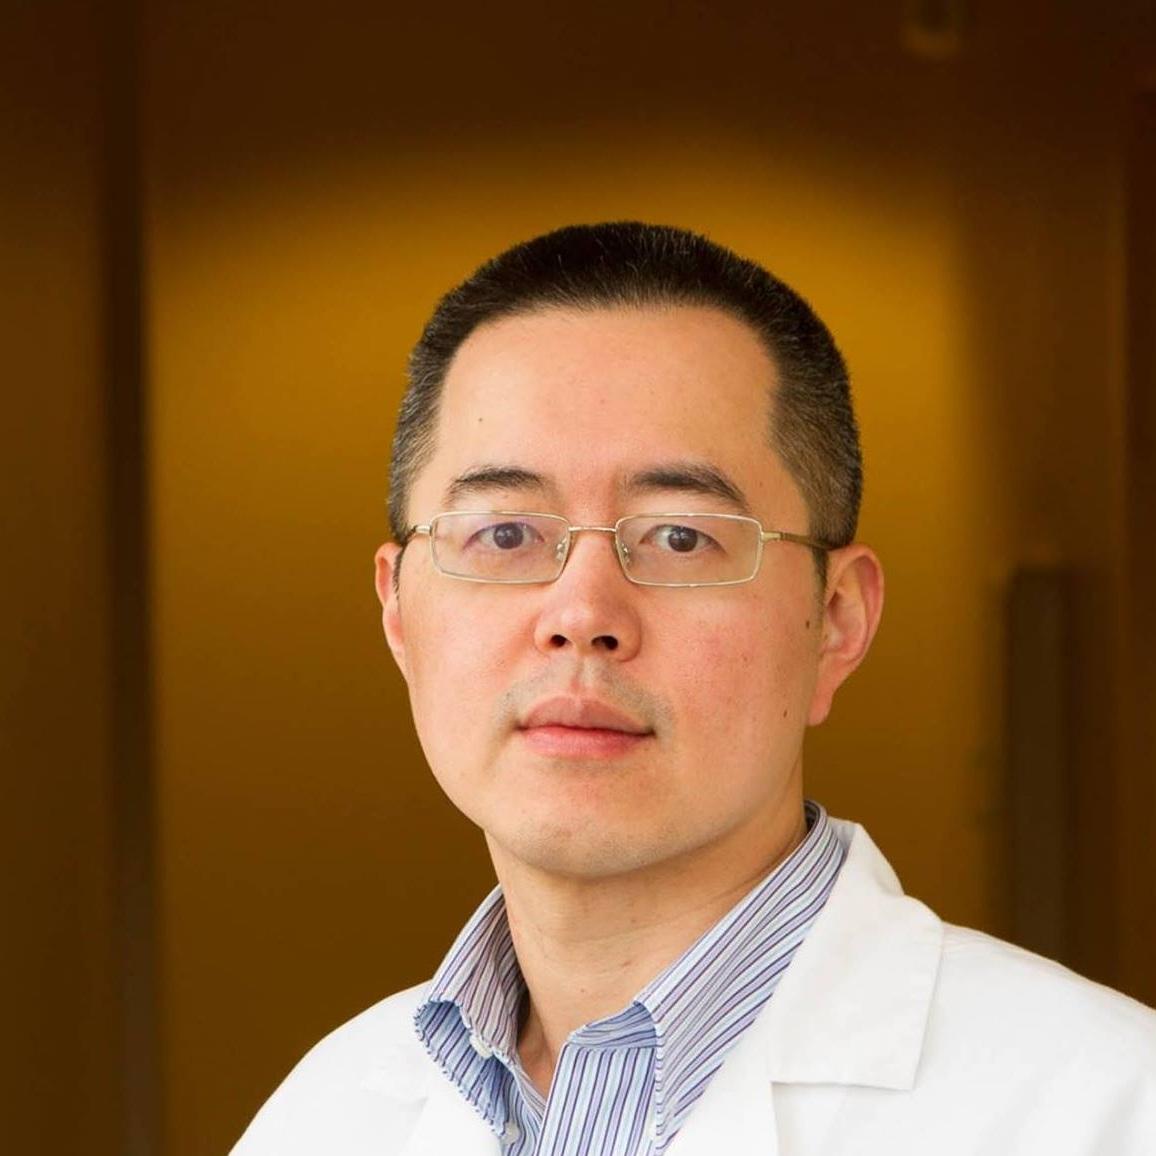 Dr. Peter Yeh